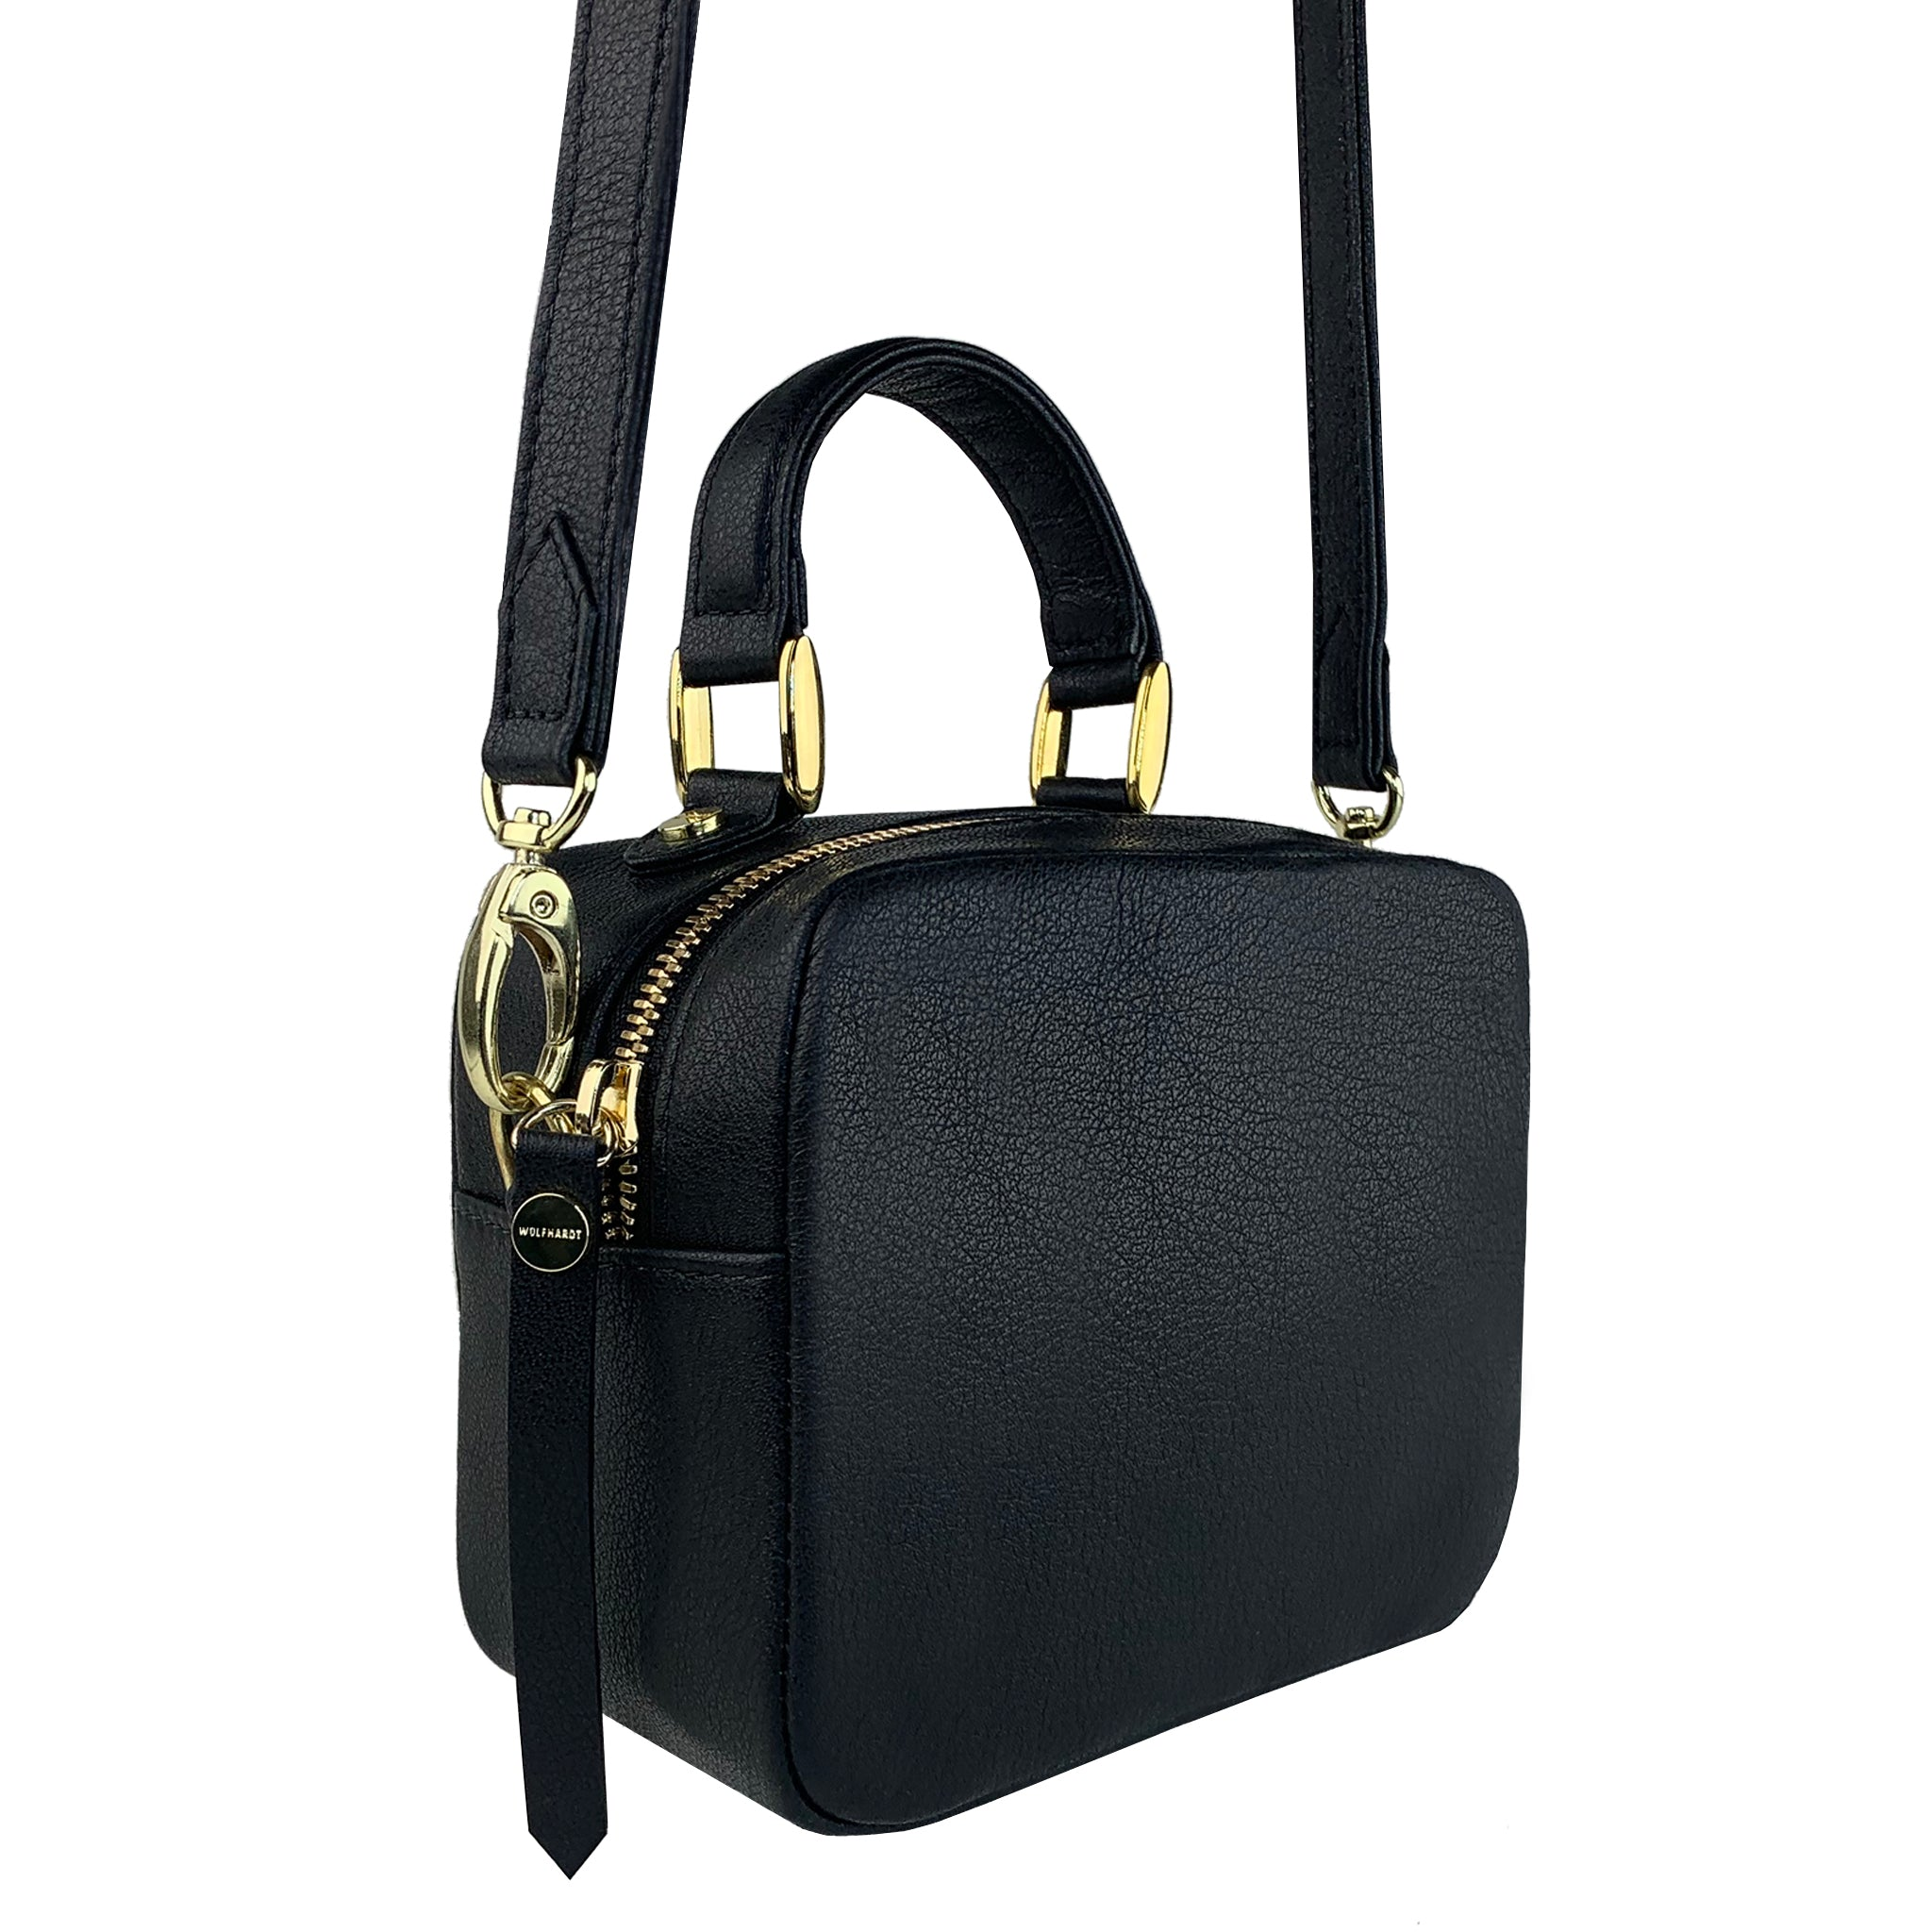 BLACK  LEATHER WOMEN'S STUDDED NIVEAU SQUARE CROSSBODY